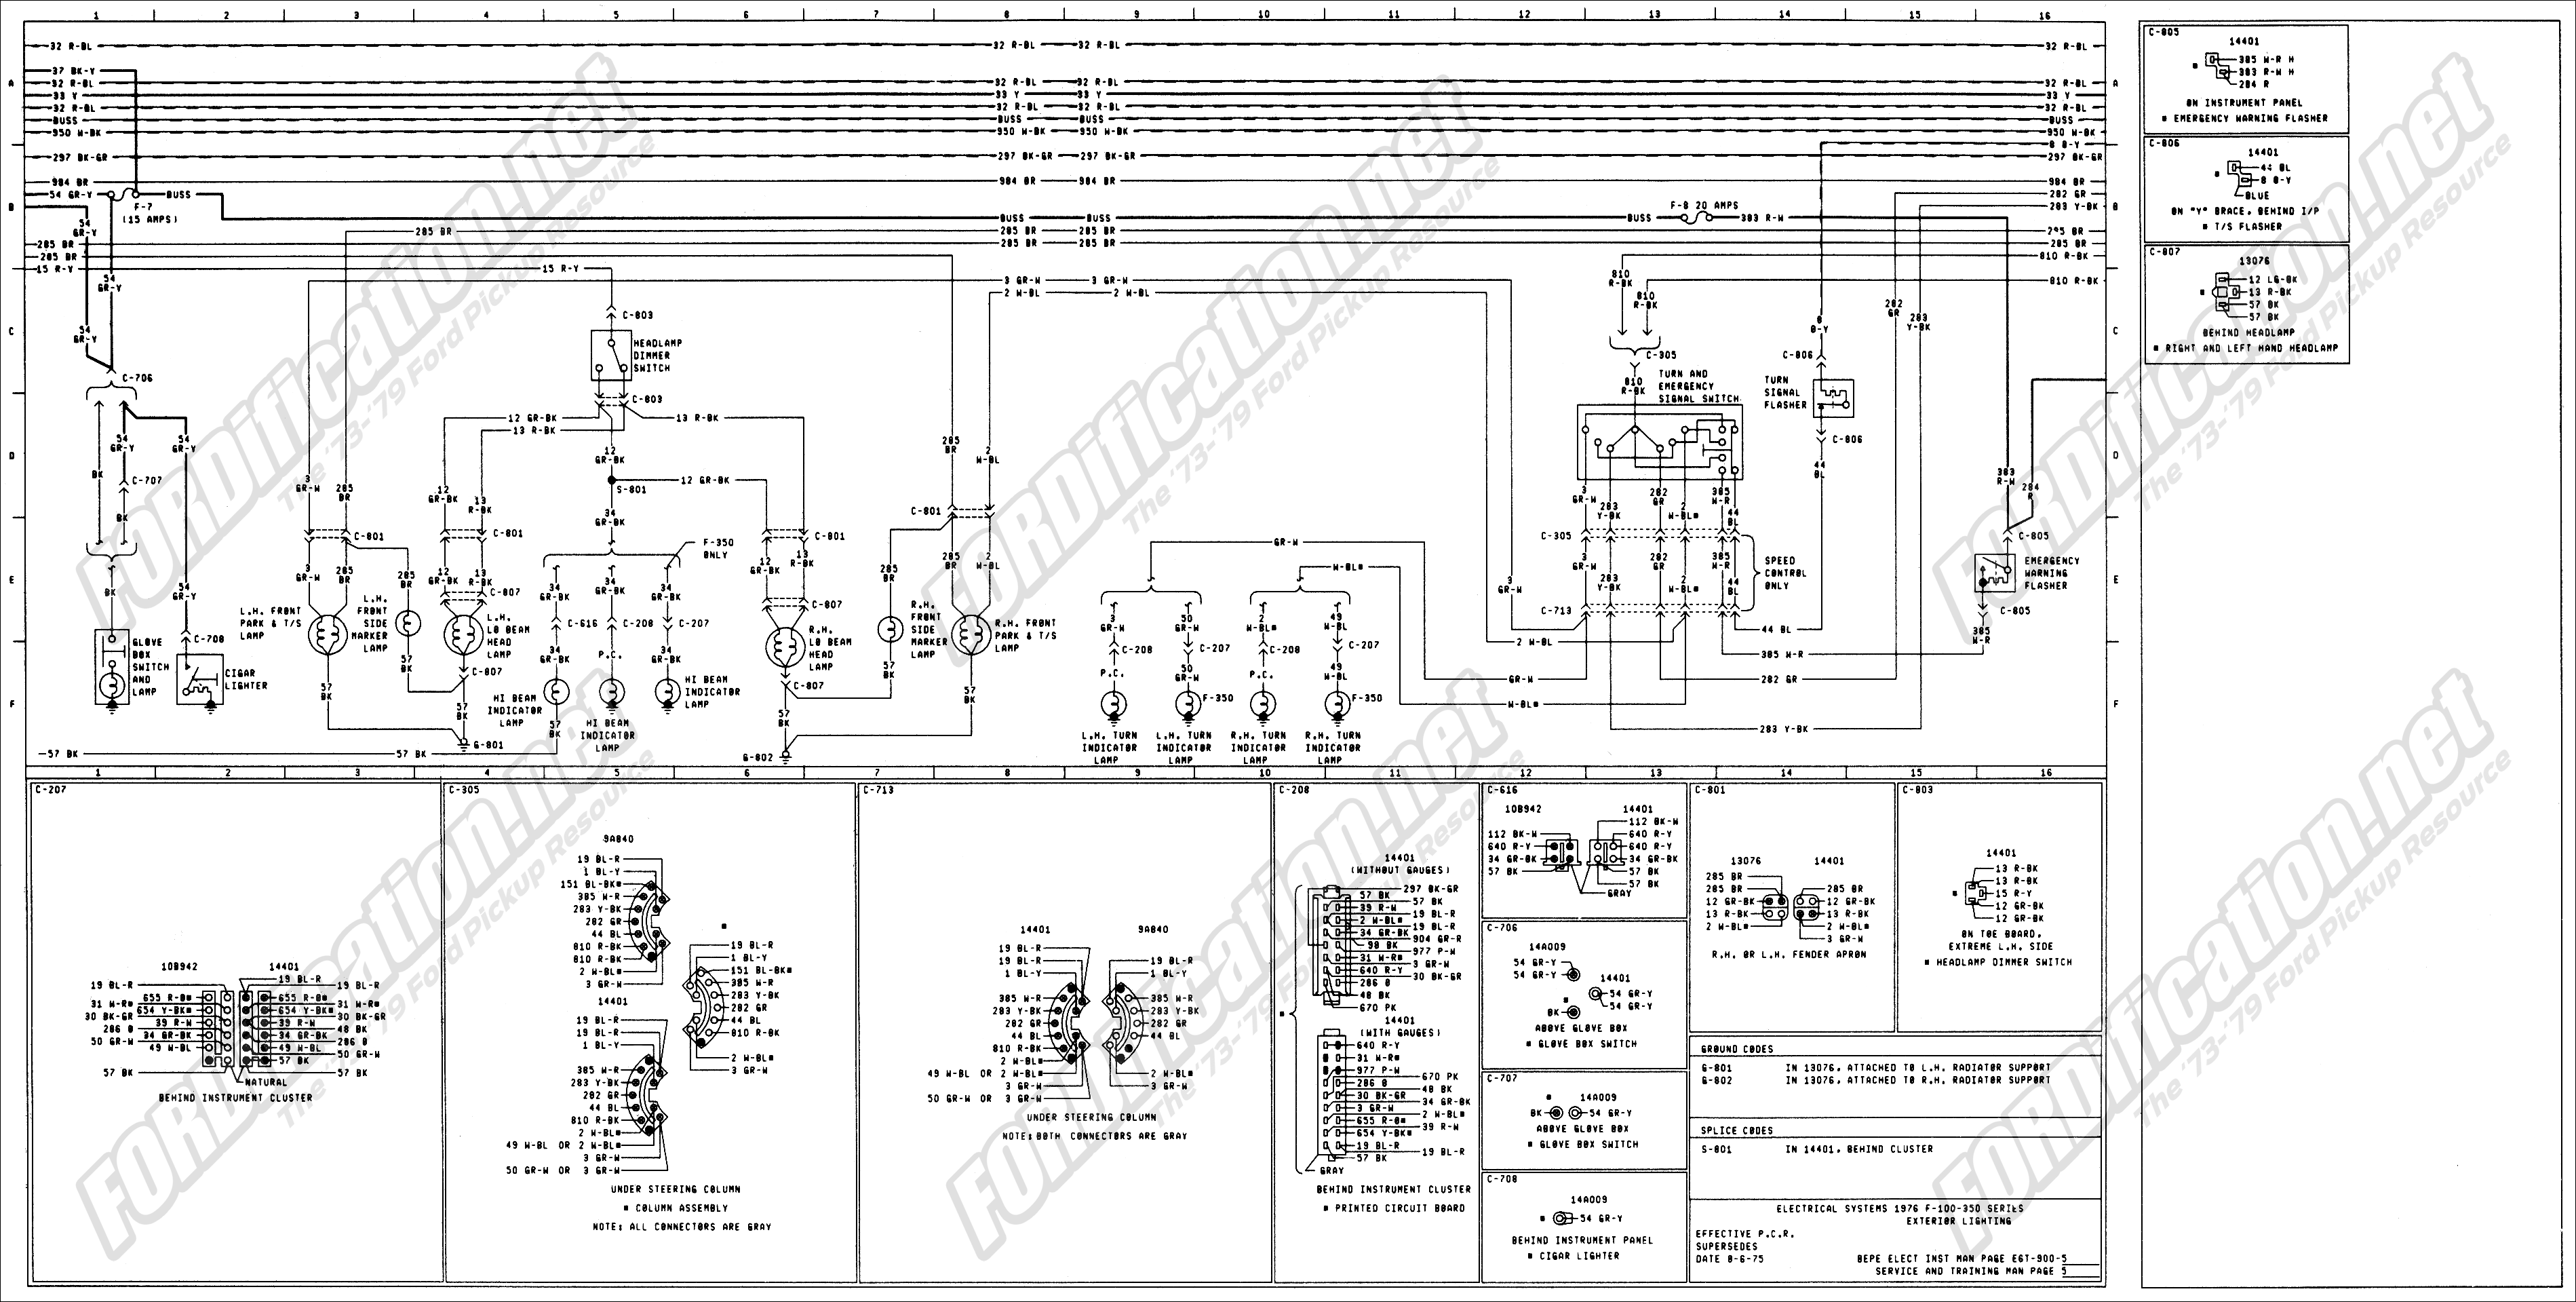 Ford F500 Wiring Diagram - Wiring Diagrams Show Dash Light Wiring Diagram F on